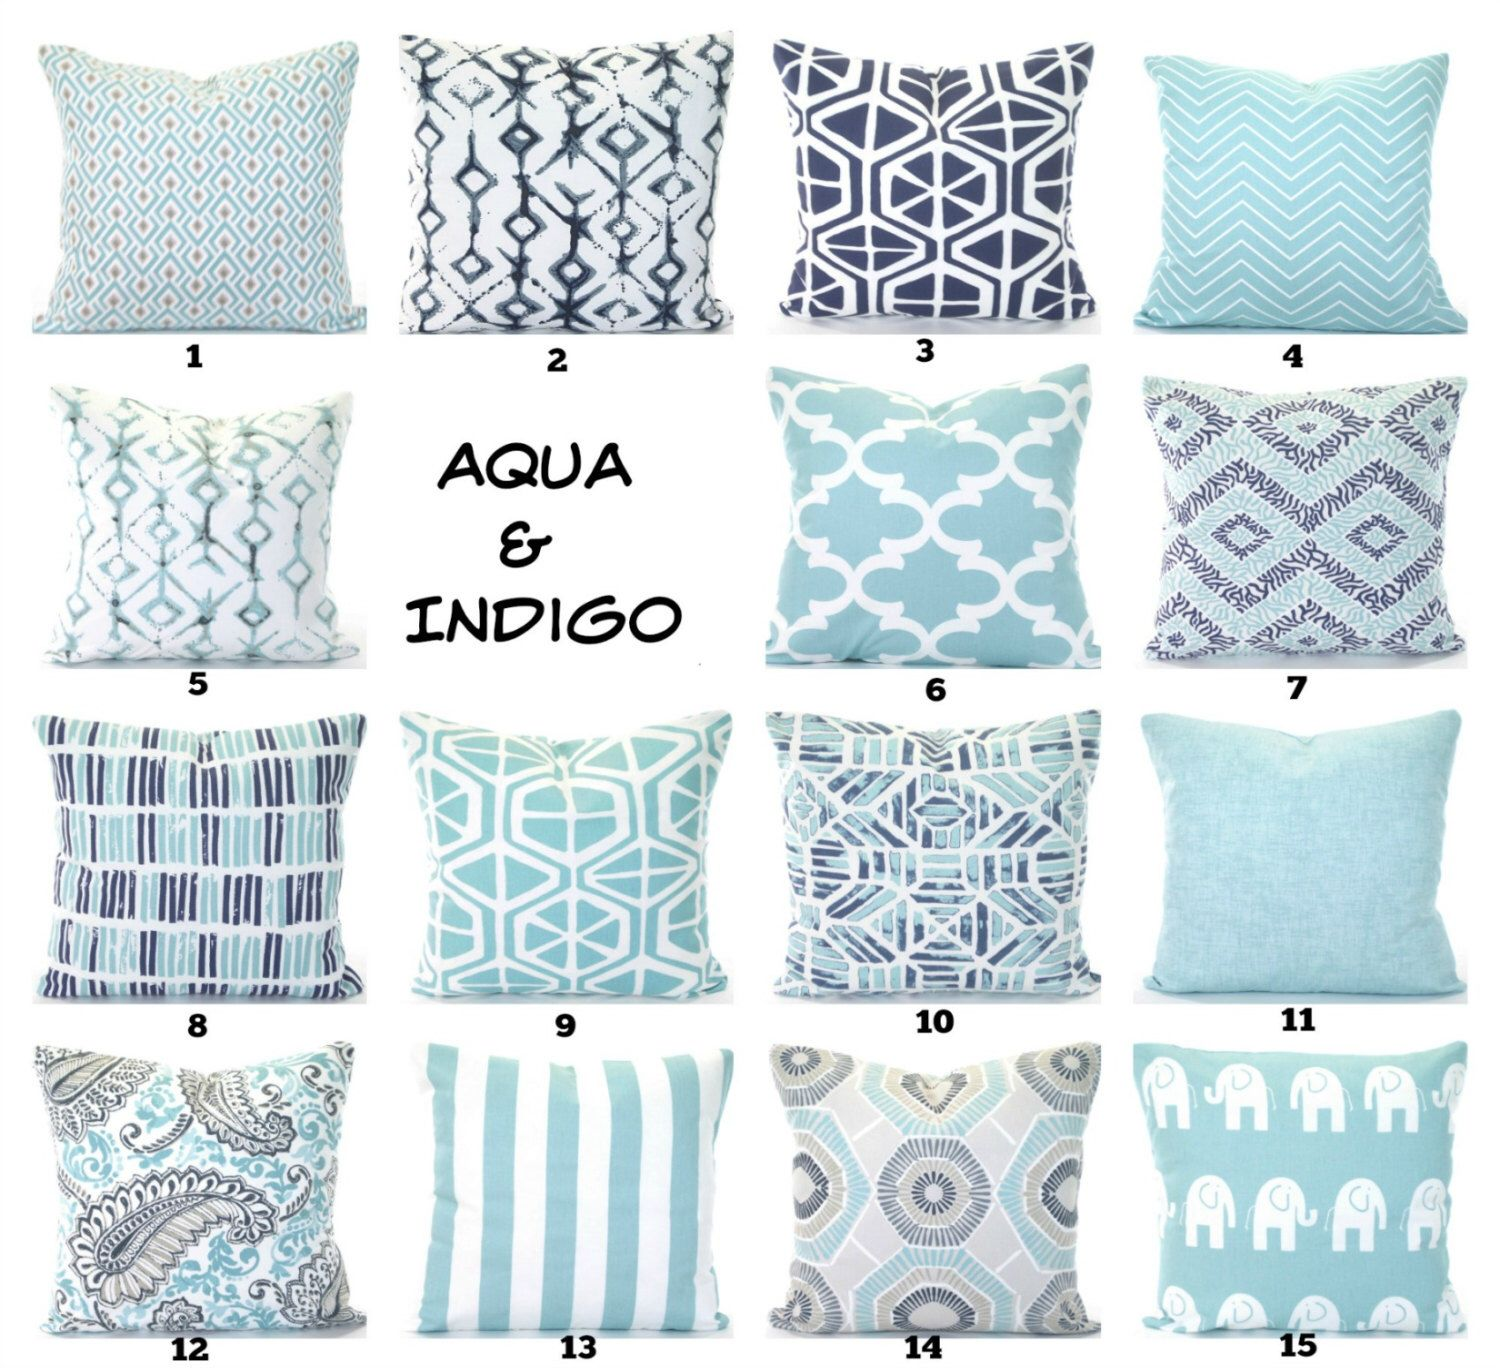 aqua navy pillow covers cushions decorative throw pillows pastel aqua indigo navy taupe white couch bed - Toss Pillows